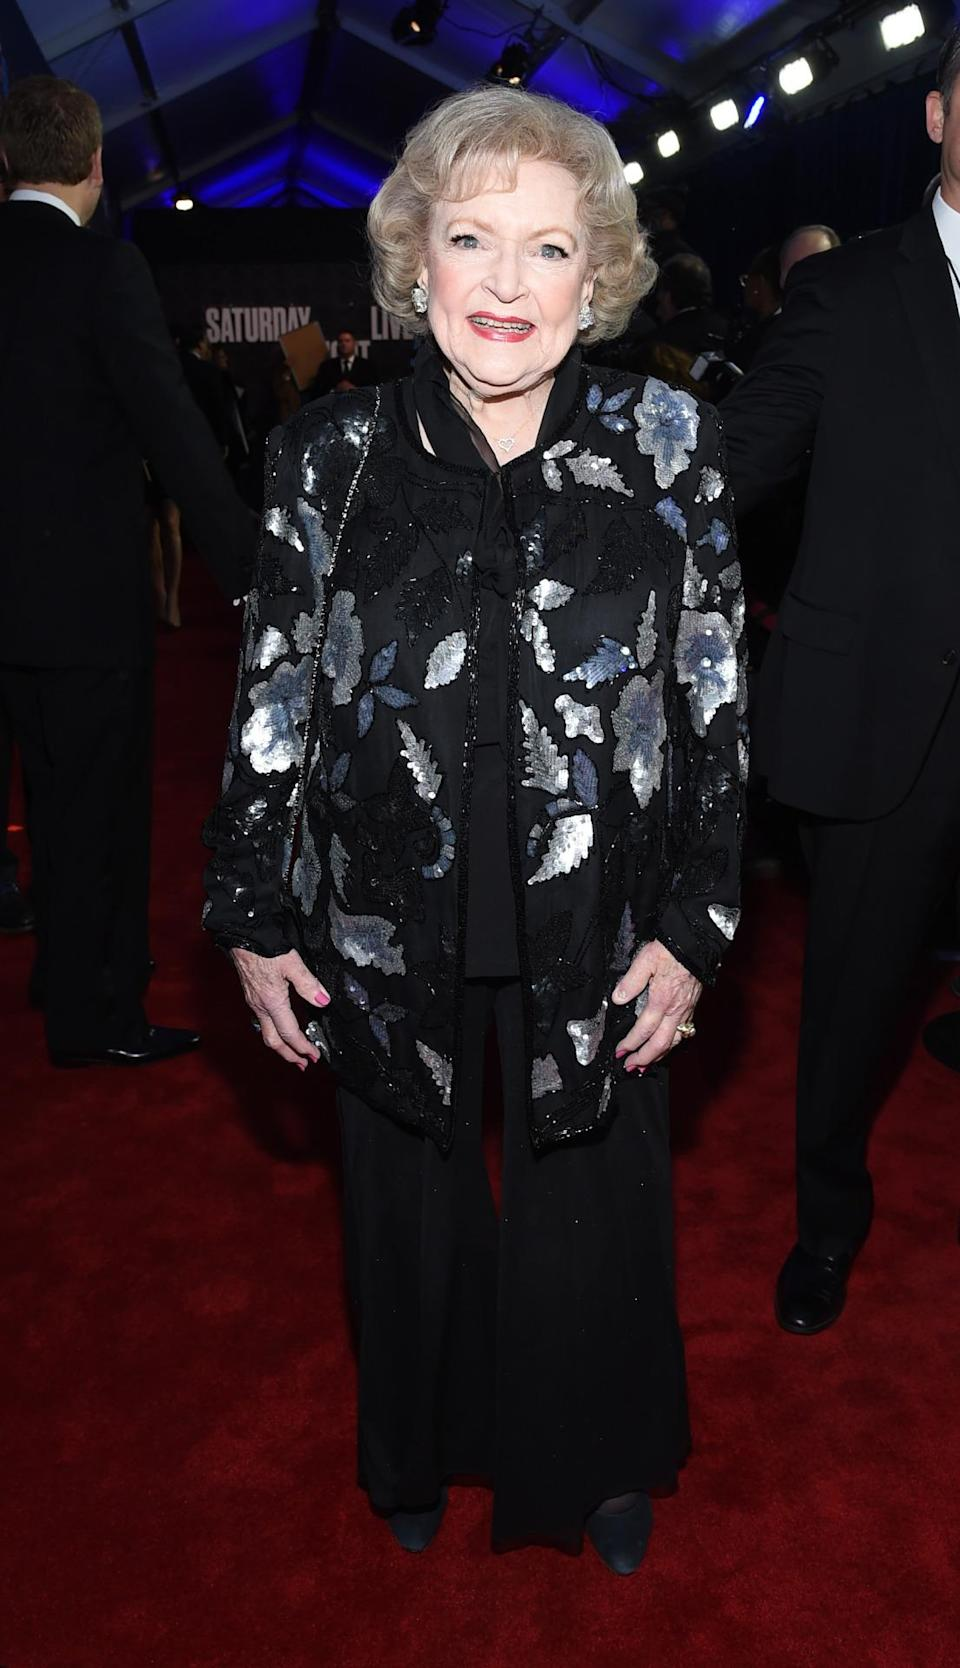 Before hitting the famed SNL stage and making out with Bradley Cooper, the 93-year-old actress was on trend in dark florals and flare pants.